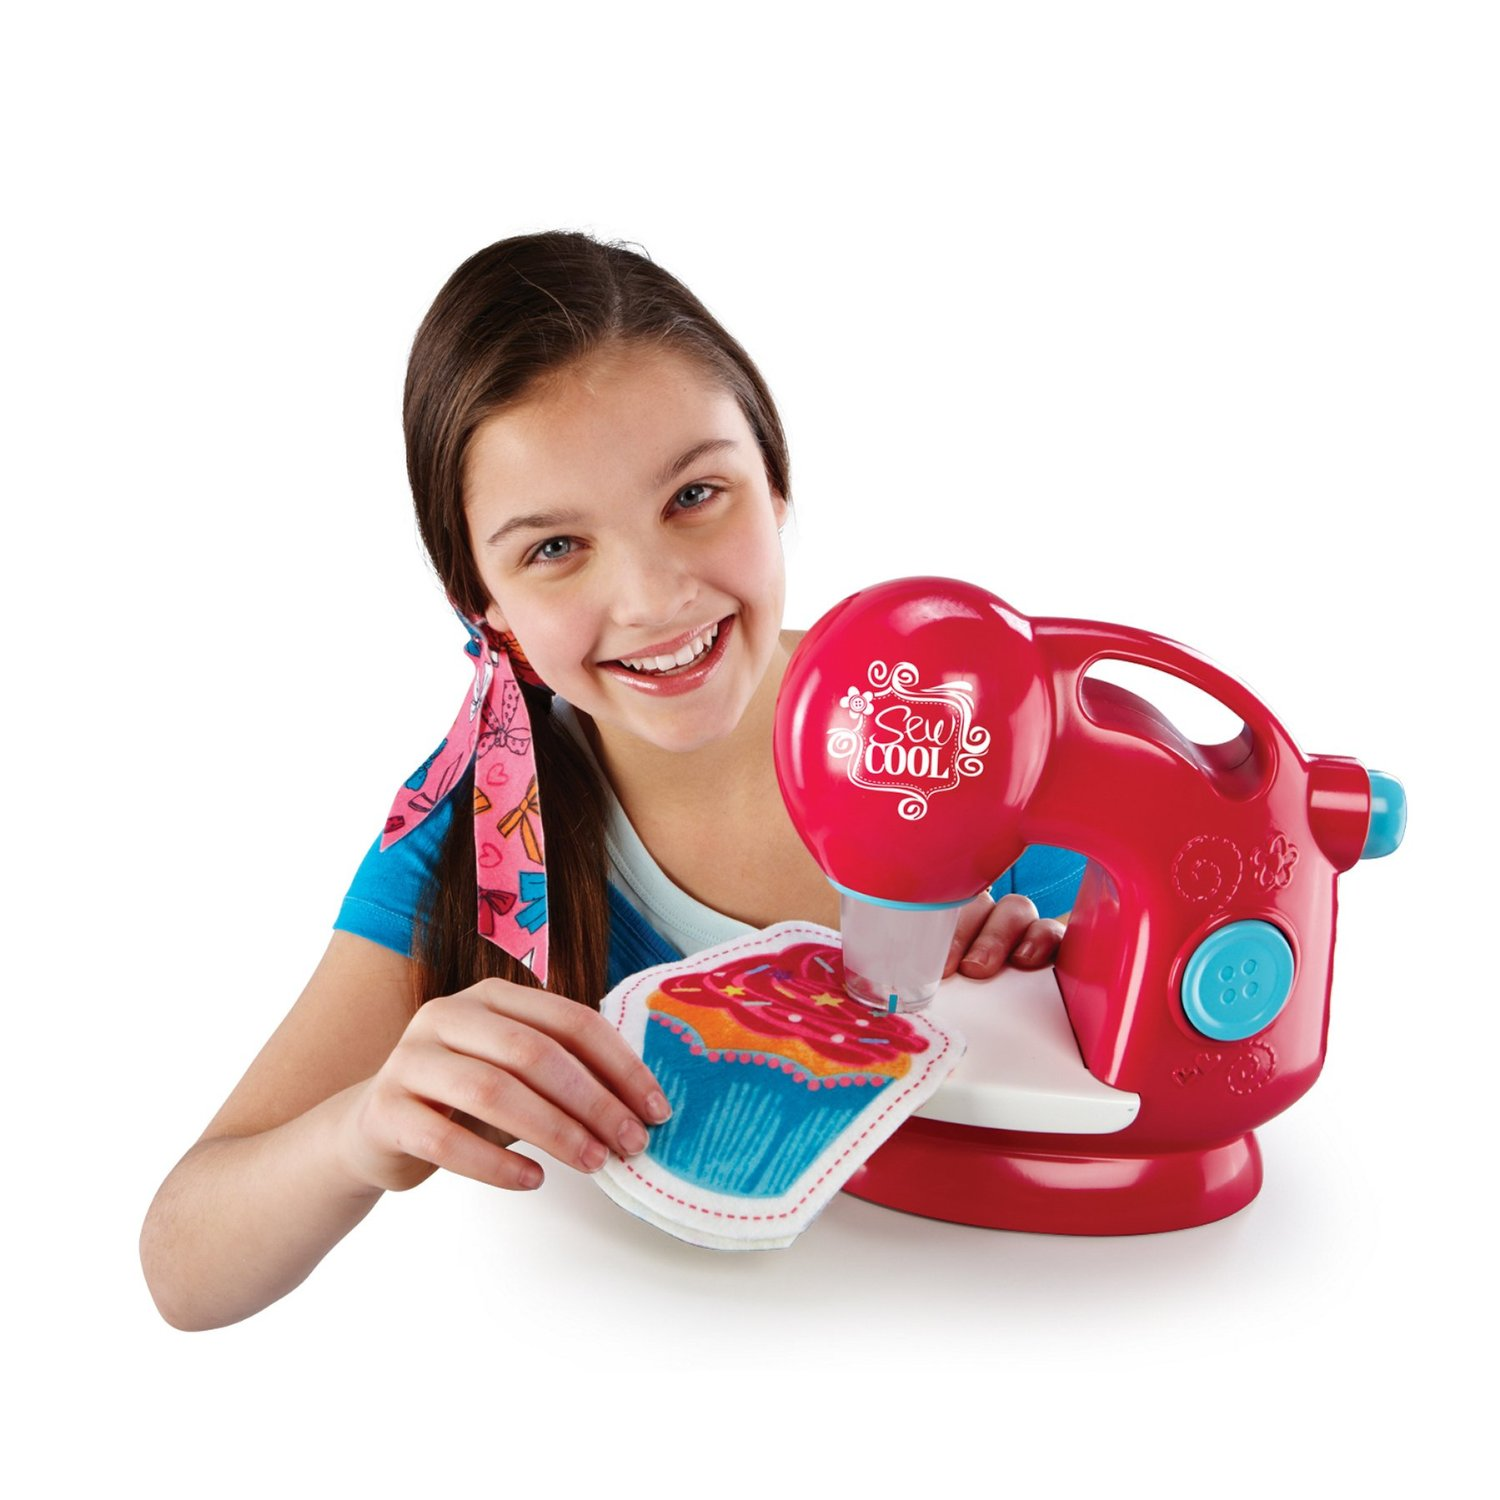 Sew Cool Machine Only $26.97 + FREE Store Pick Up!